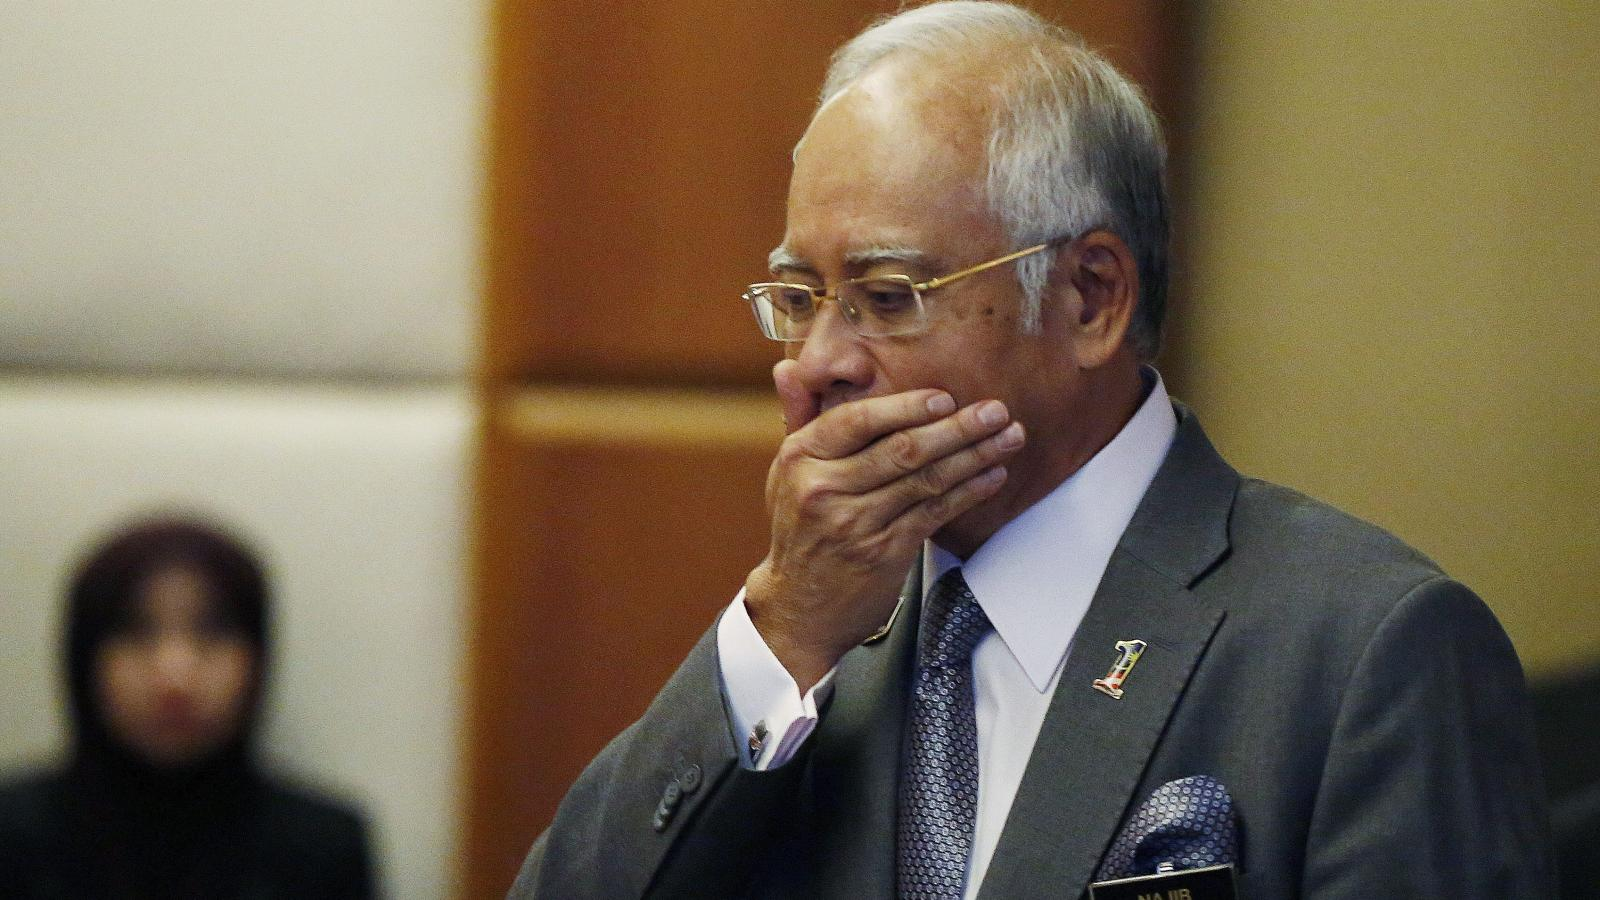 IRB's Application For Summary Judgment Against Najib